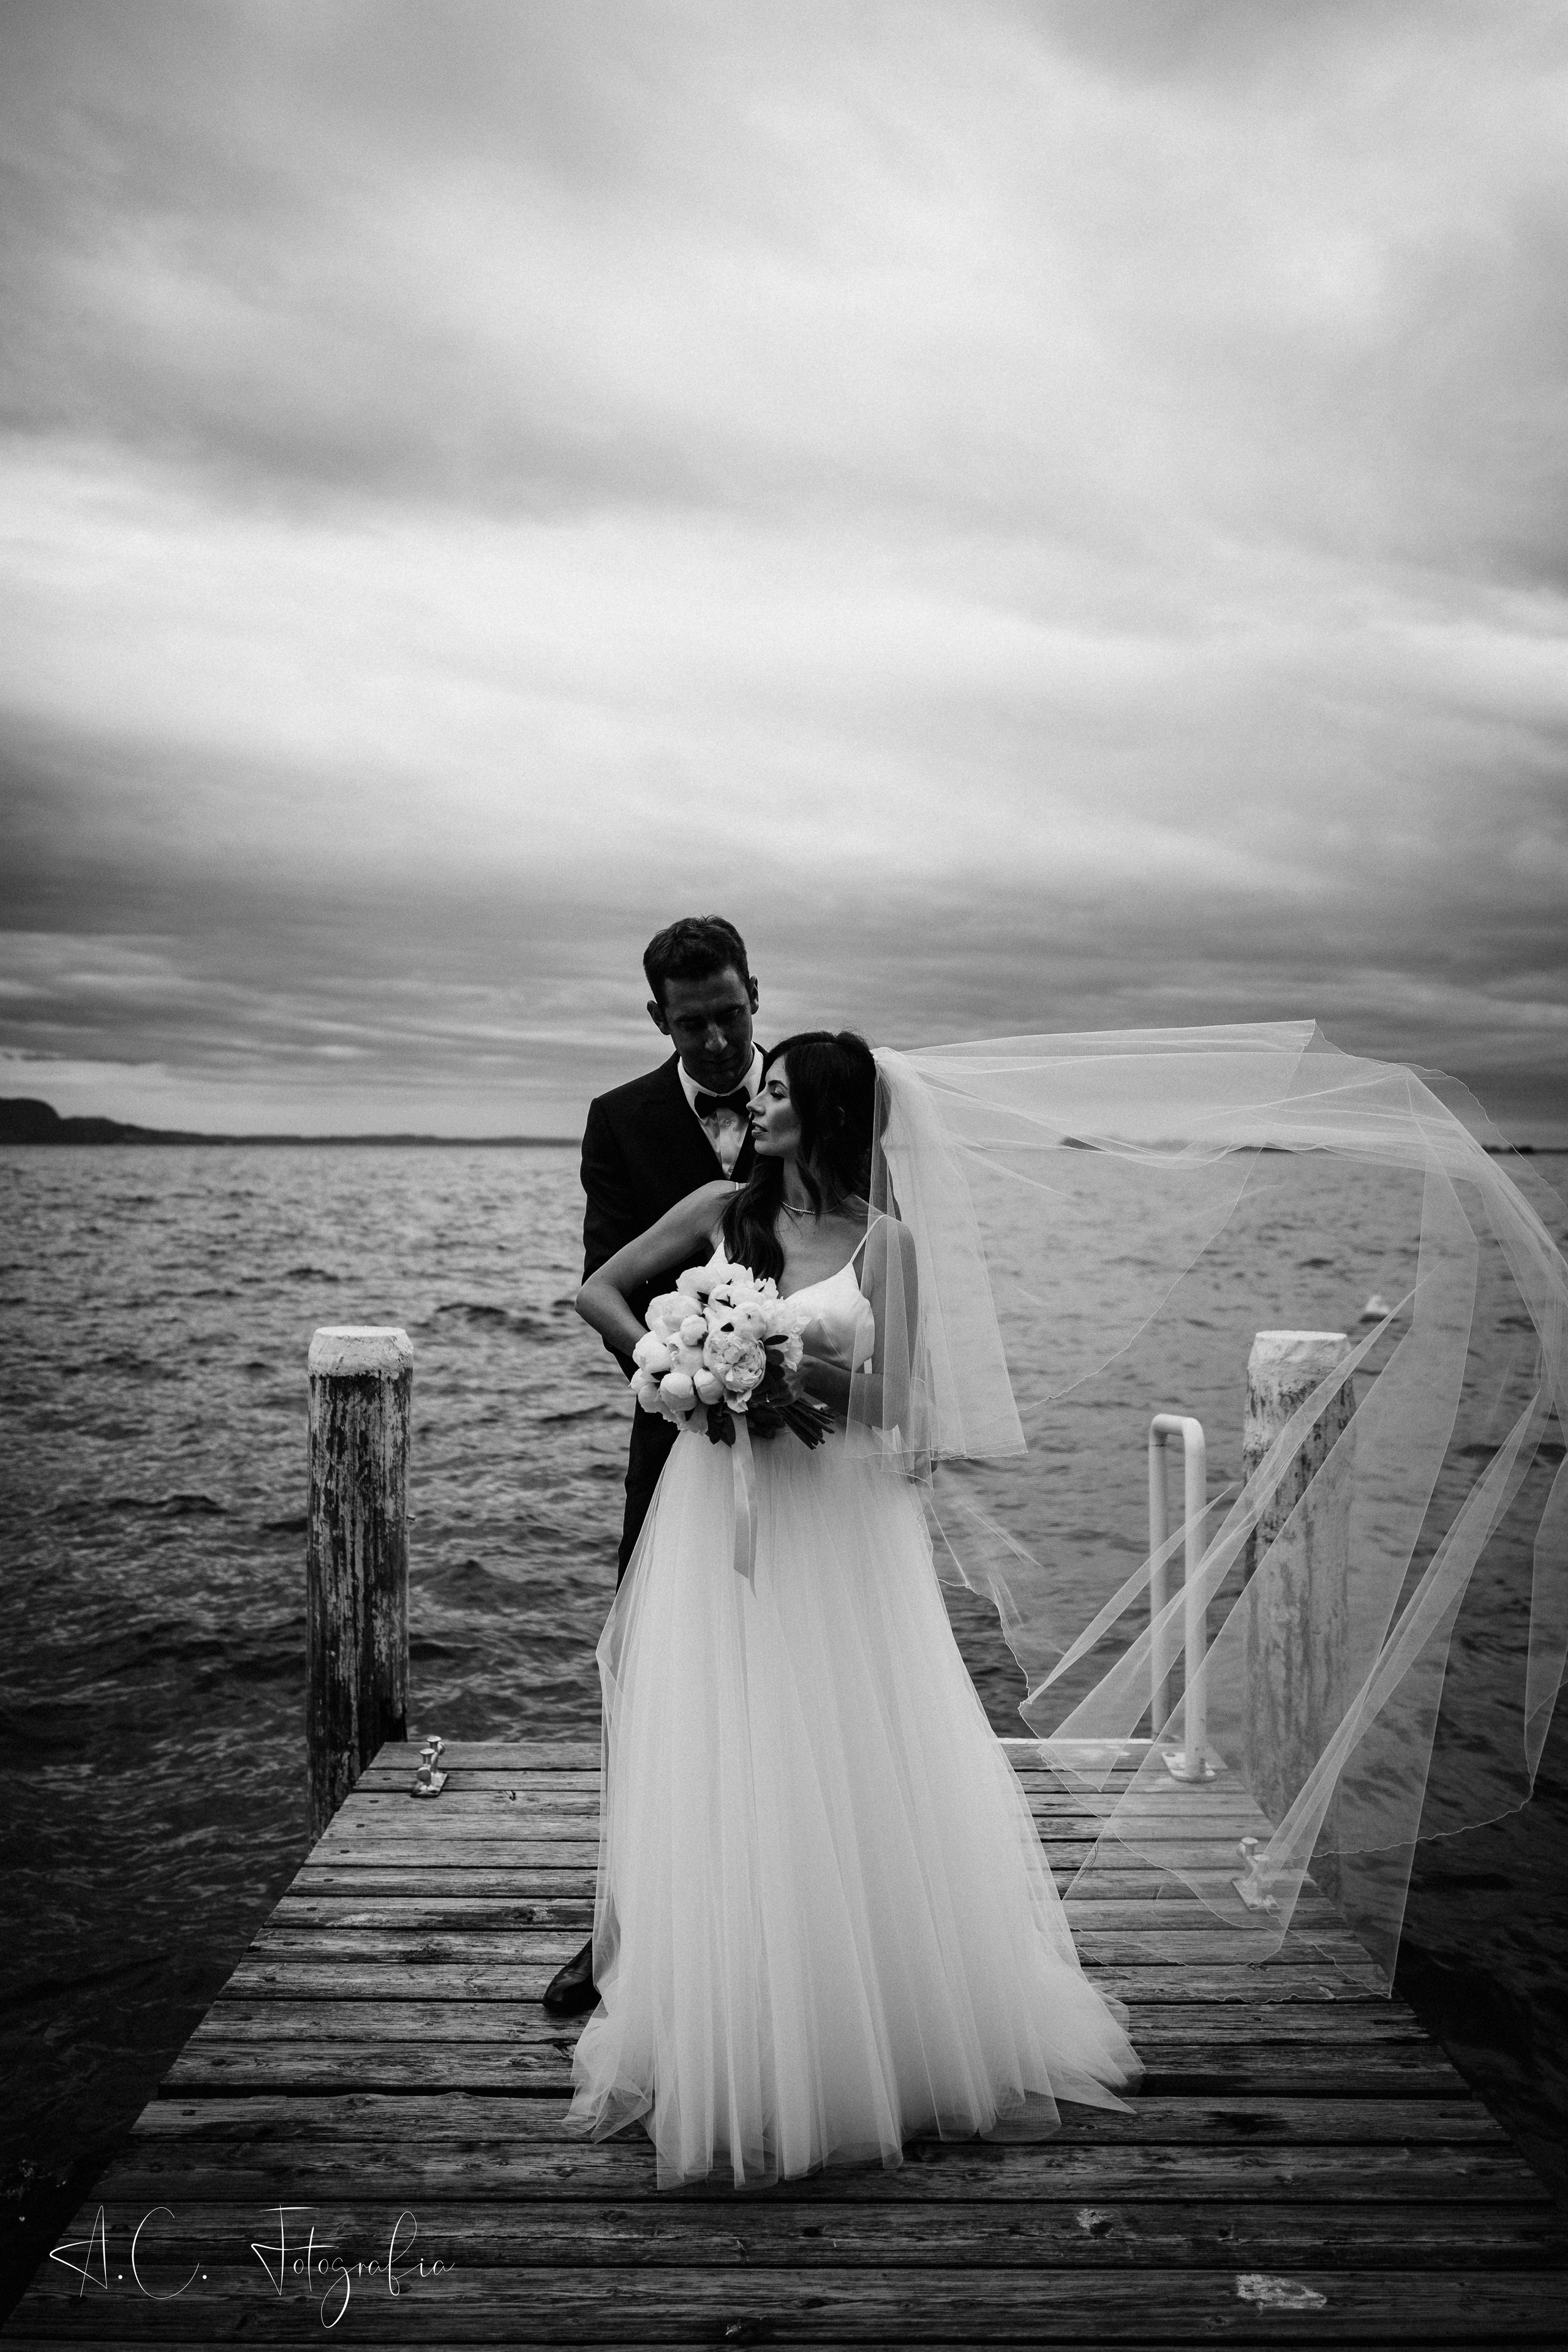 Bride and Groom in love on Garda lake